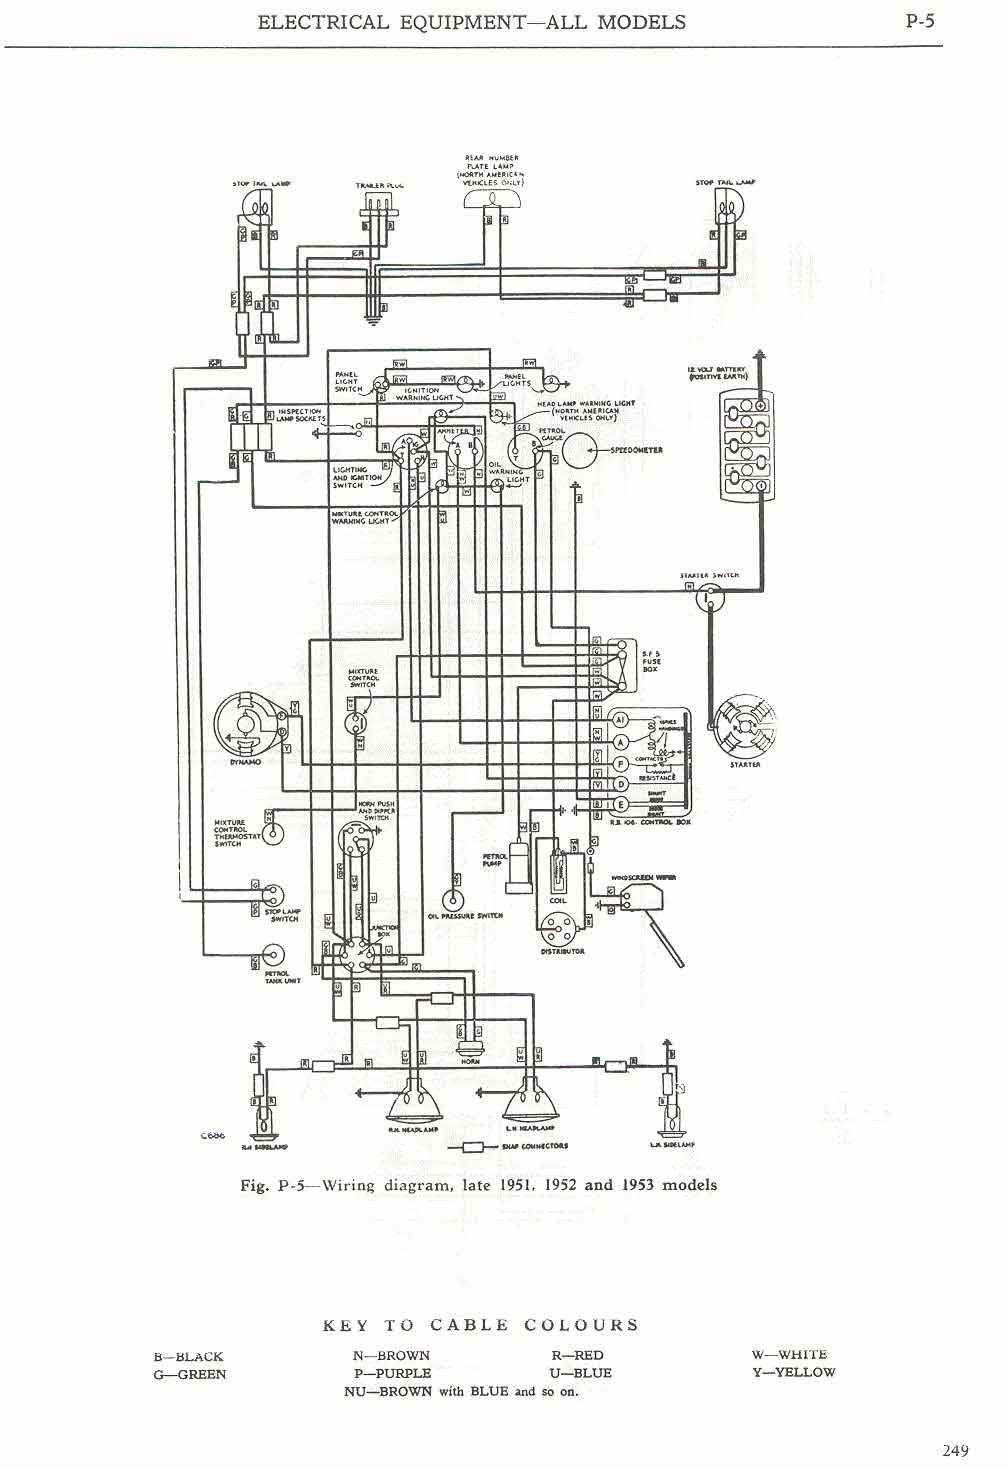 1999 Land Rover Wiring Diagram 30 Wiring Diagram Images